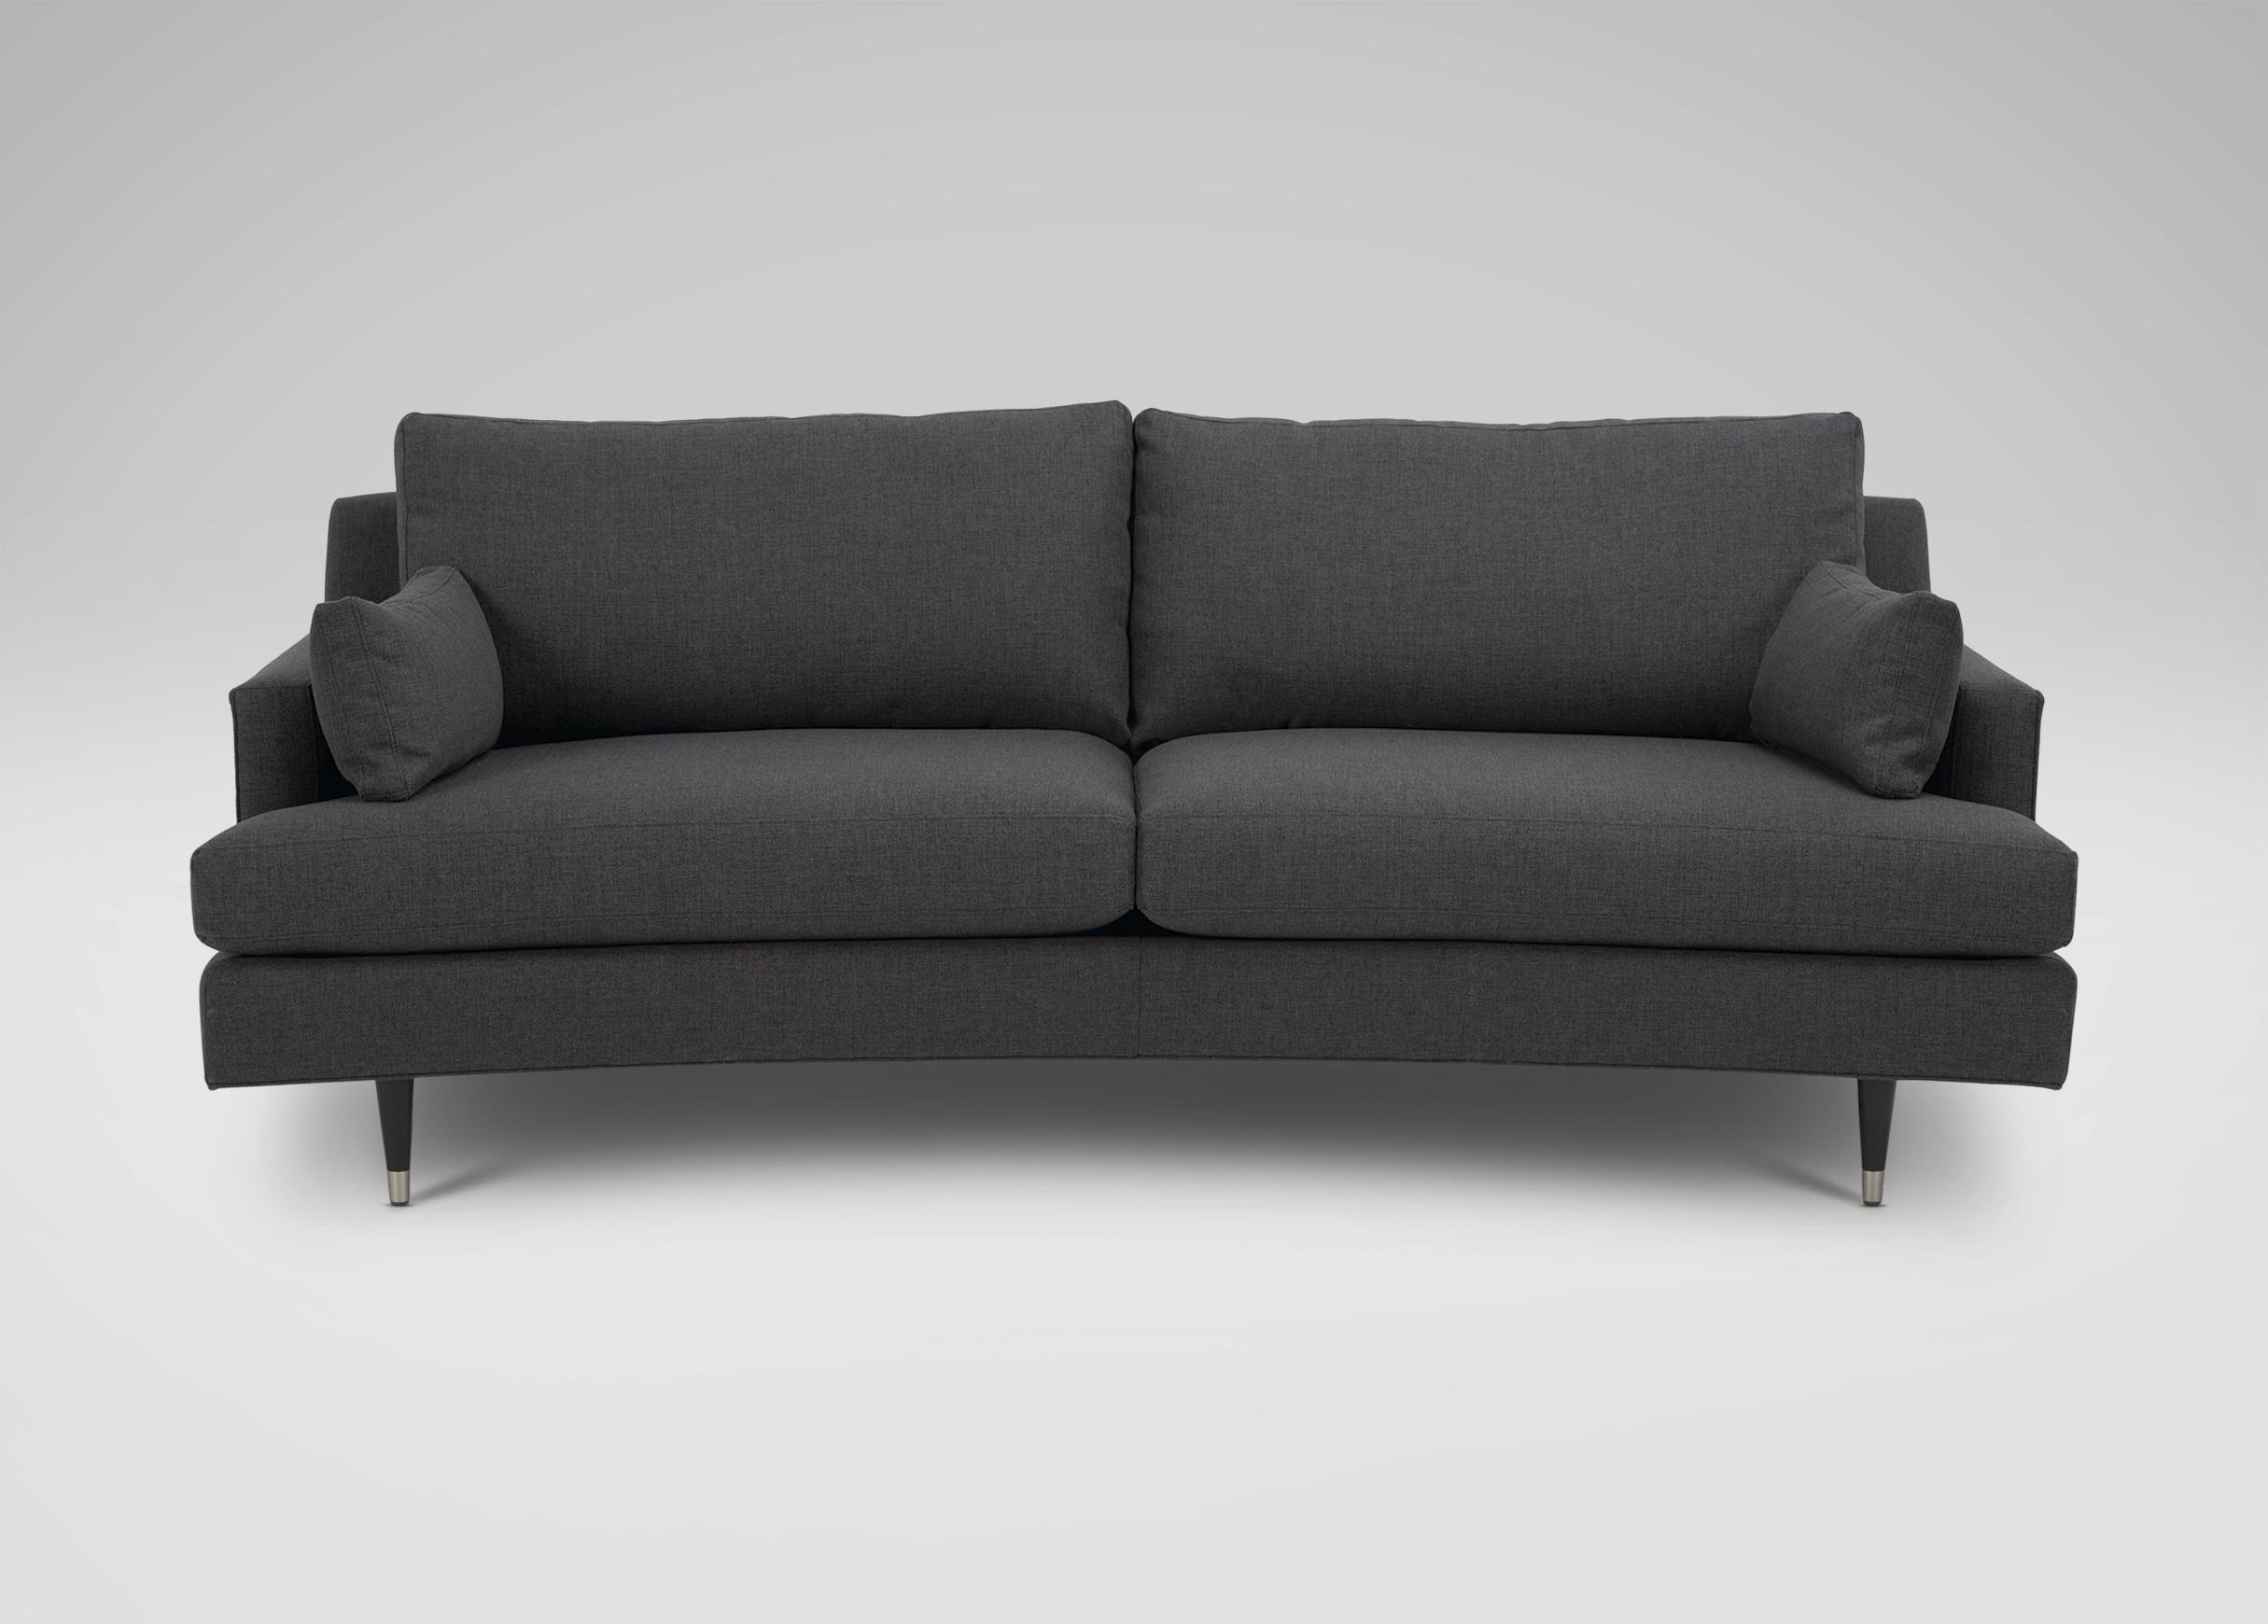 Apollo Sofa | Sofas & Loveseats Regarding Chadwick Sofas (Image 2 of 20)